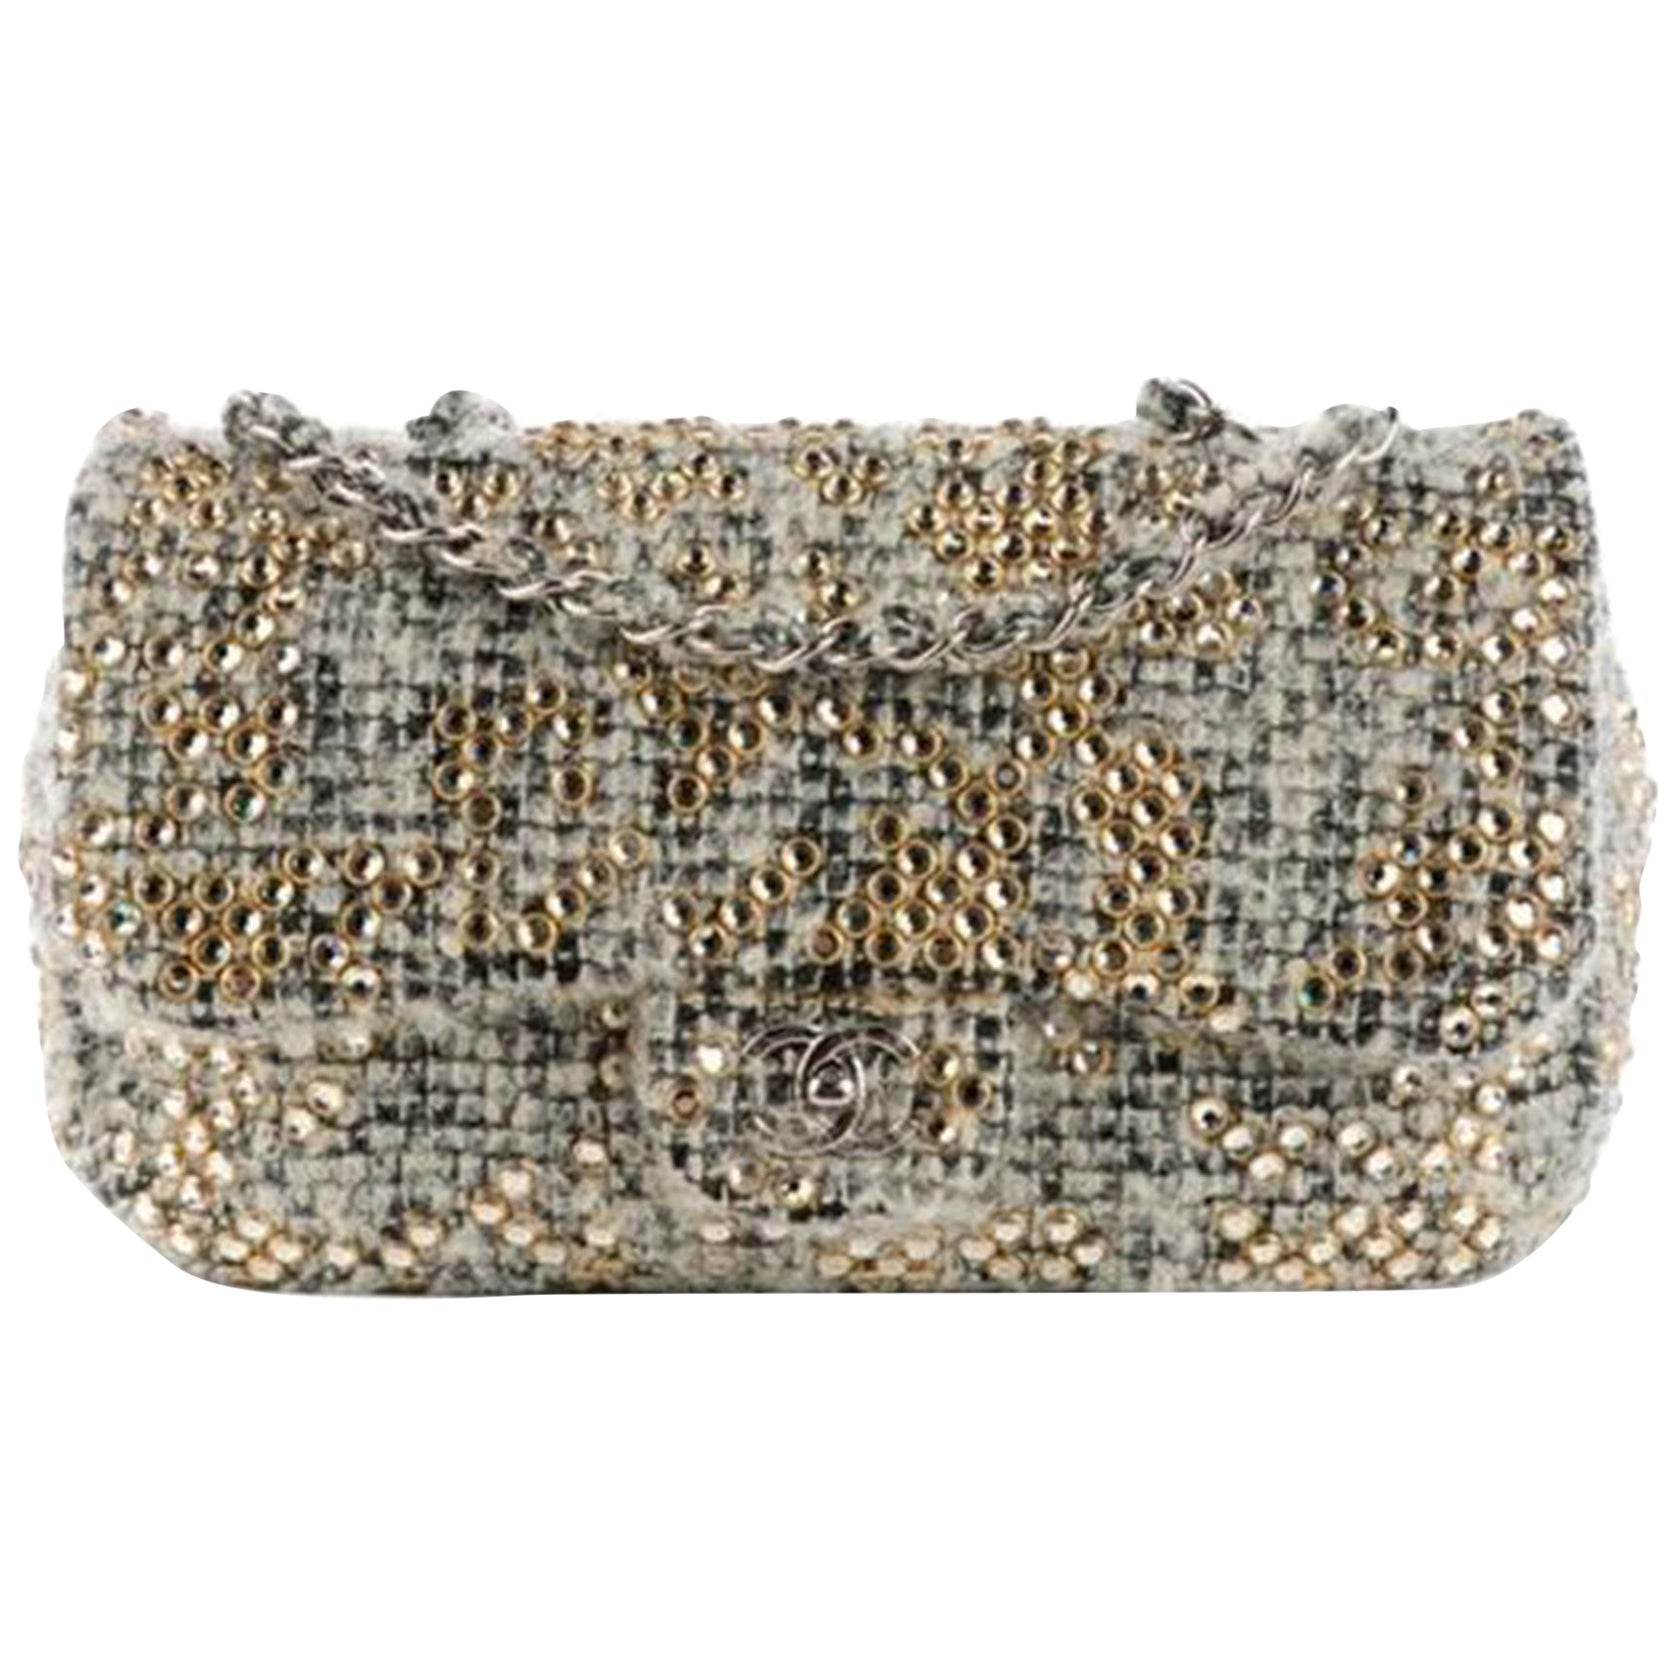 Chanel Classic Flap Limited Edition Grey Taupe Beige Wool Mohair & Swarovski Bag